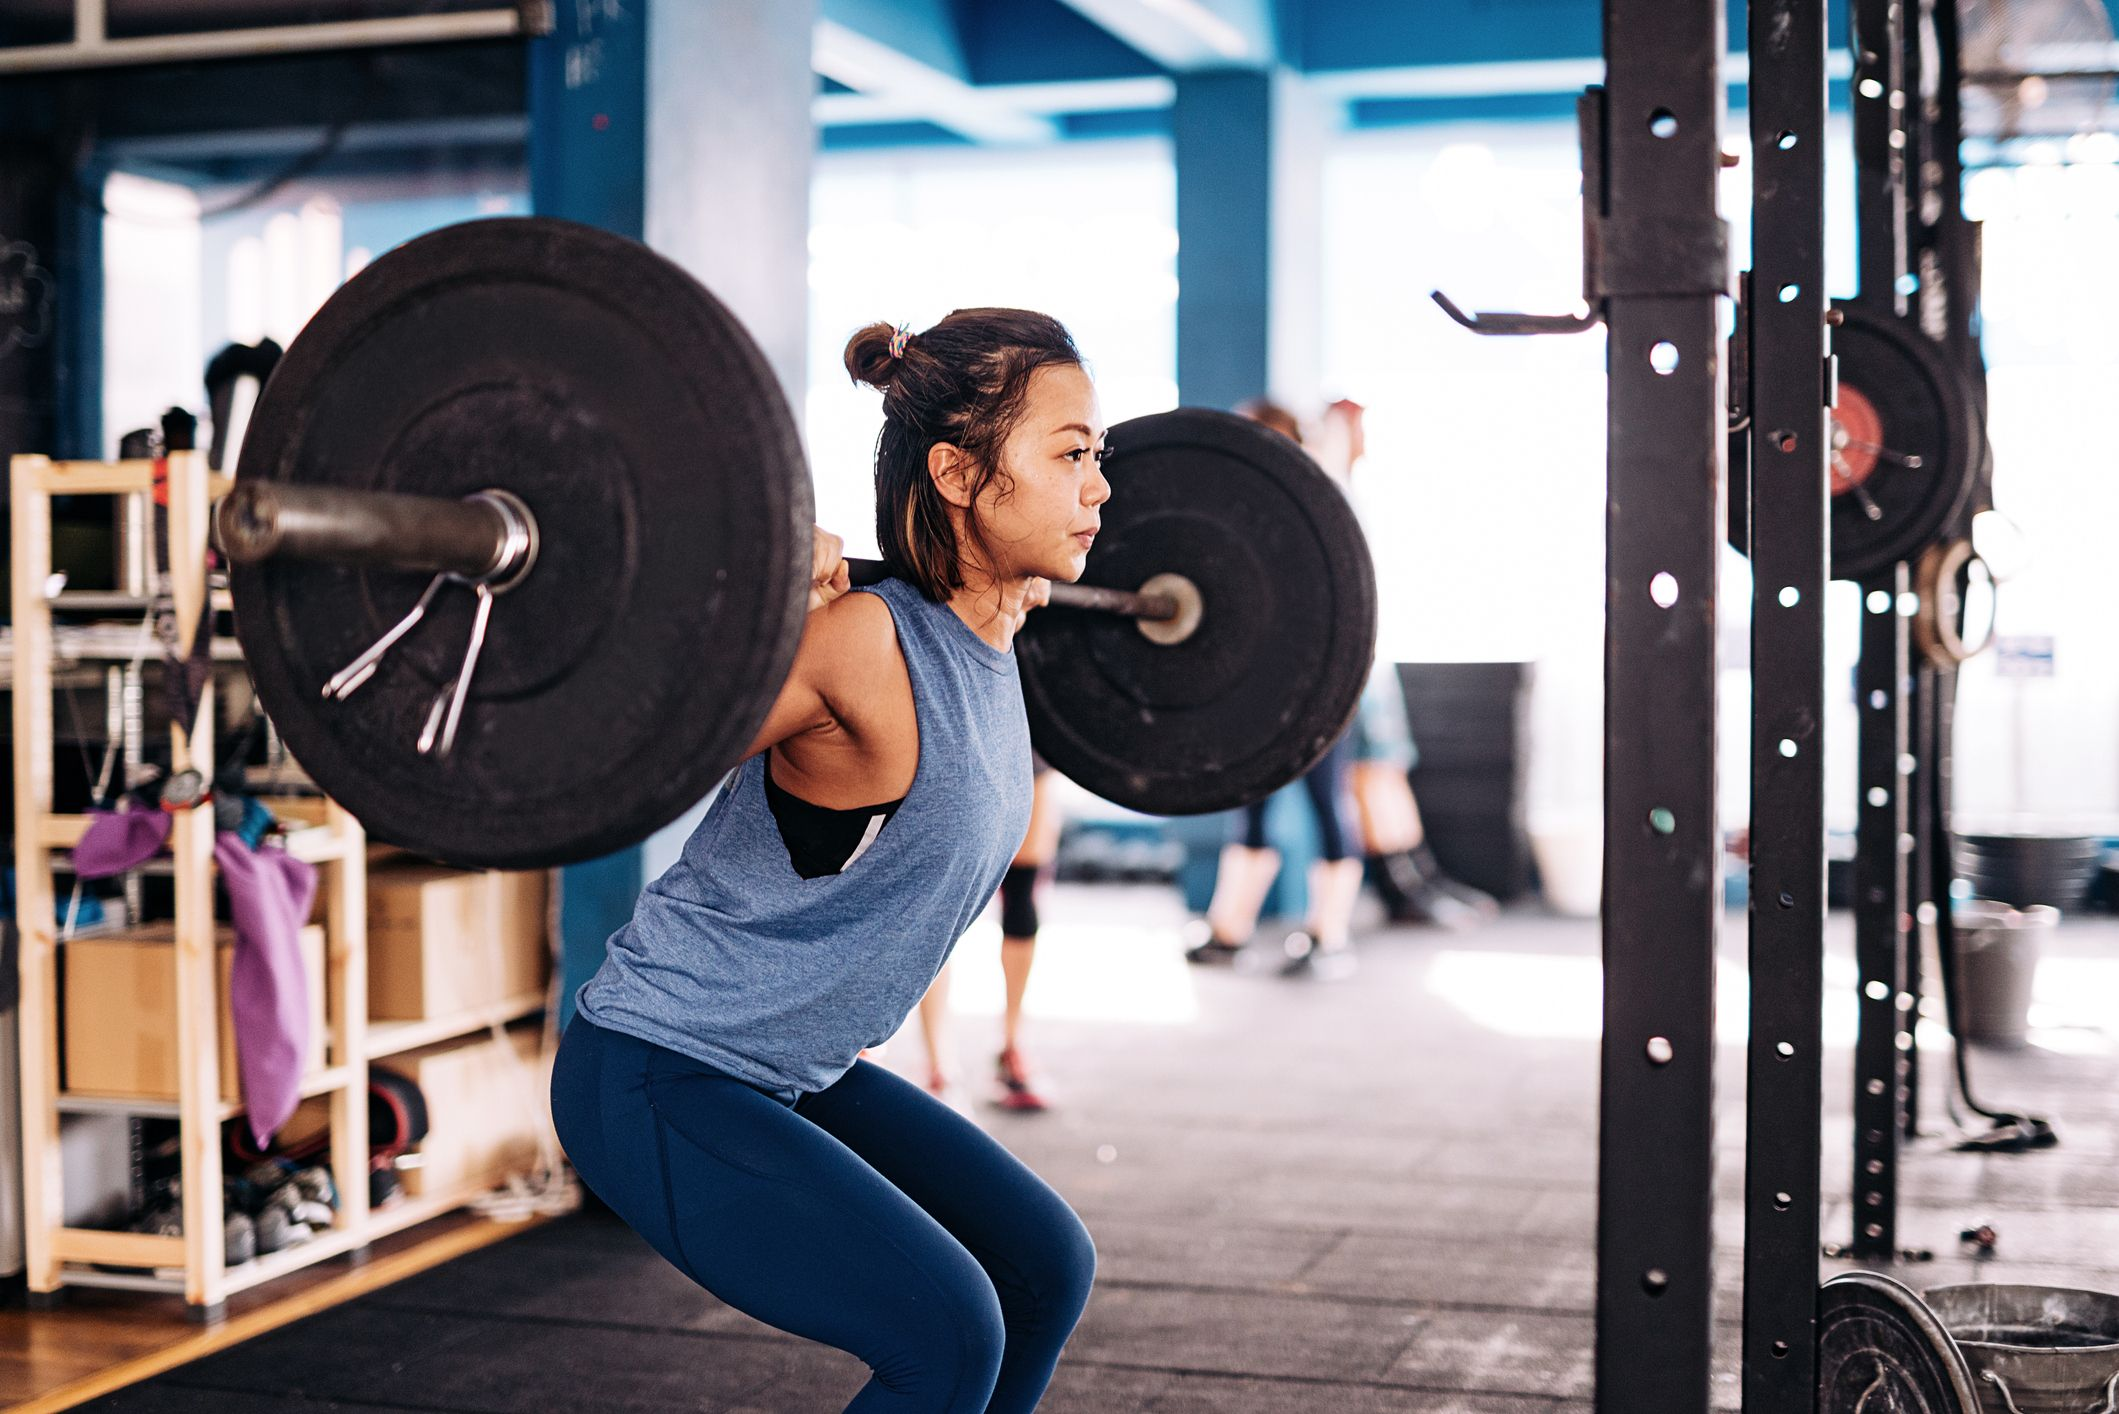 How to Get Stronger Without Lifting Heavier